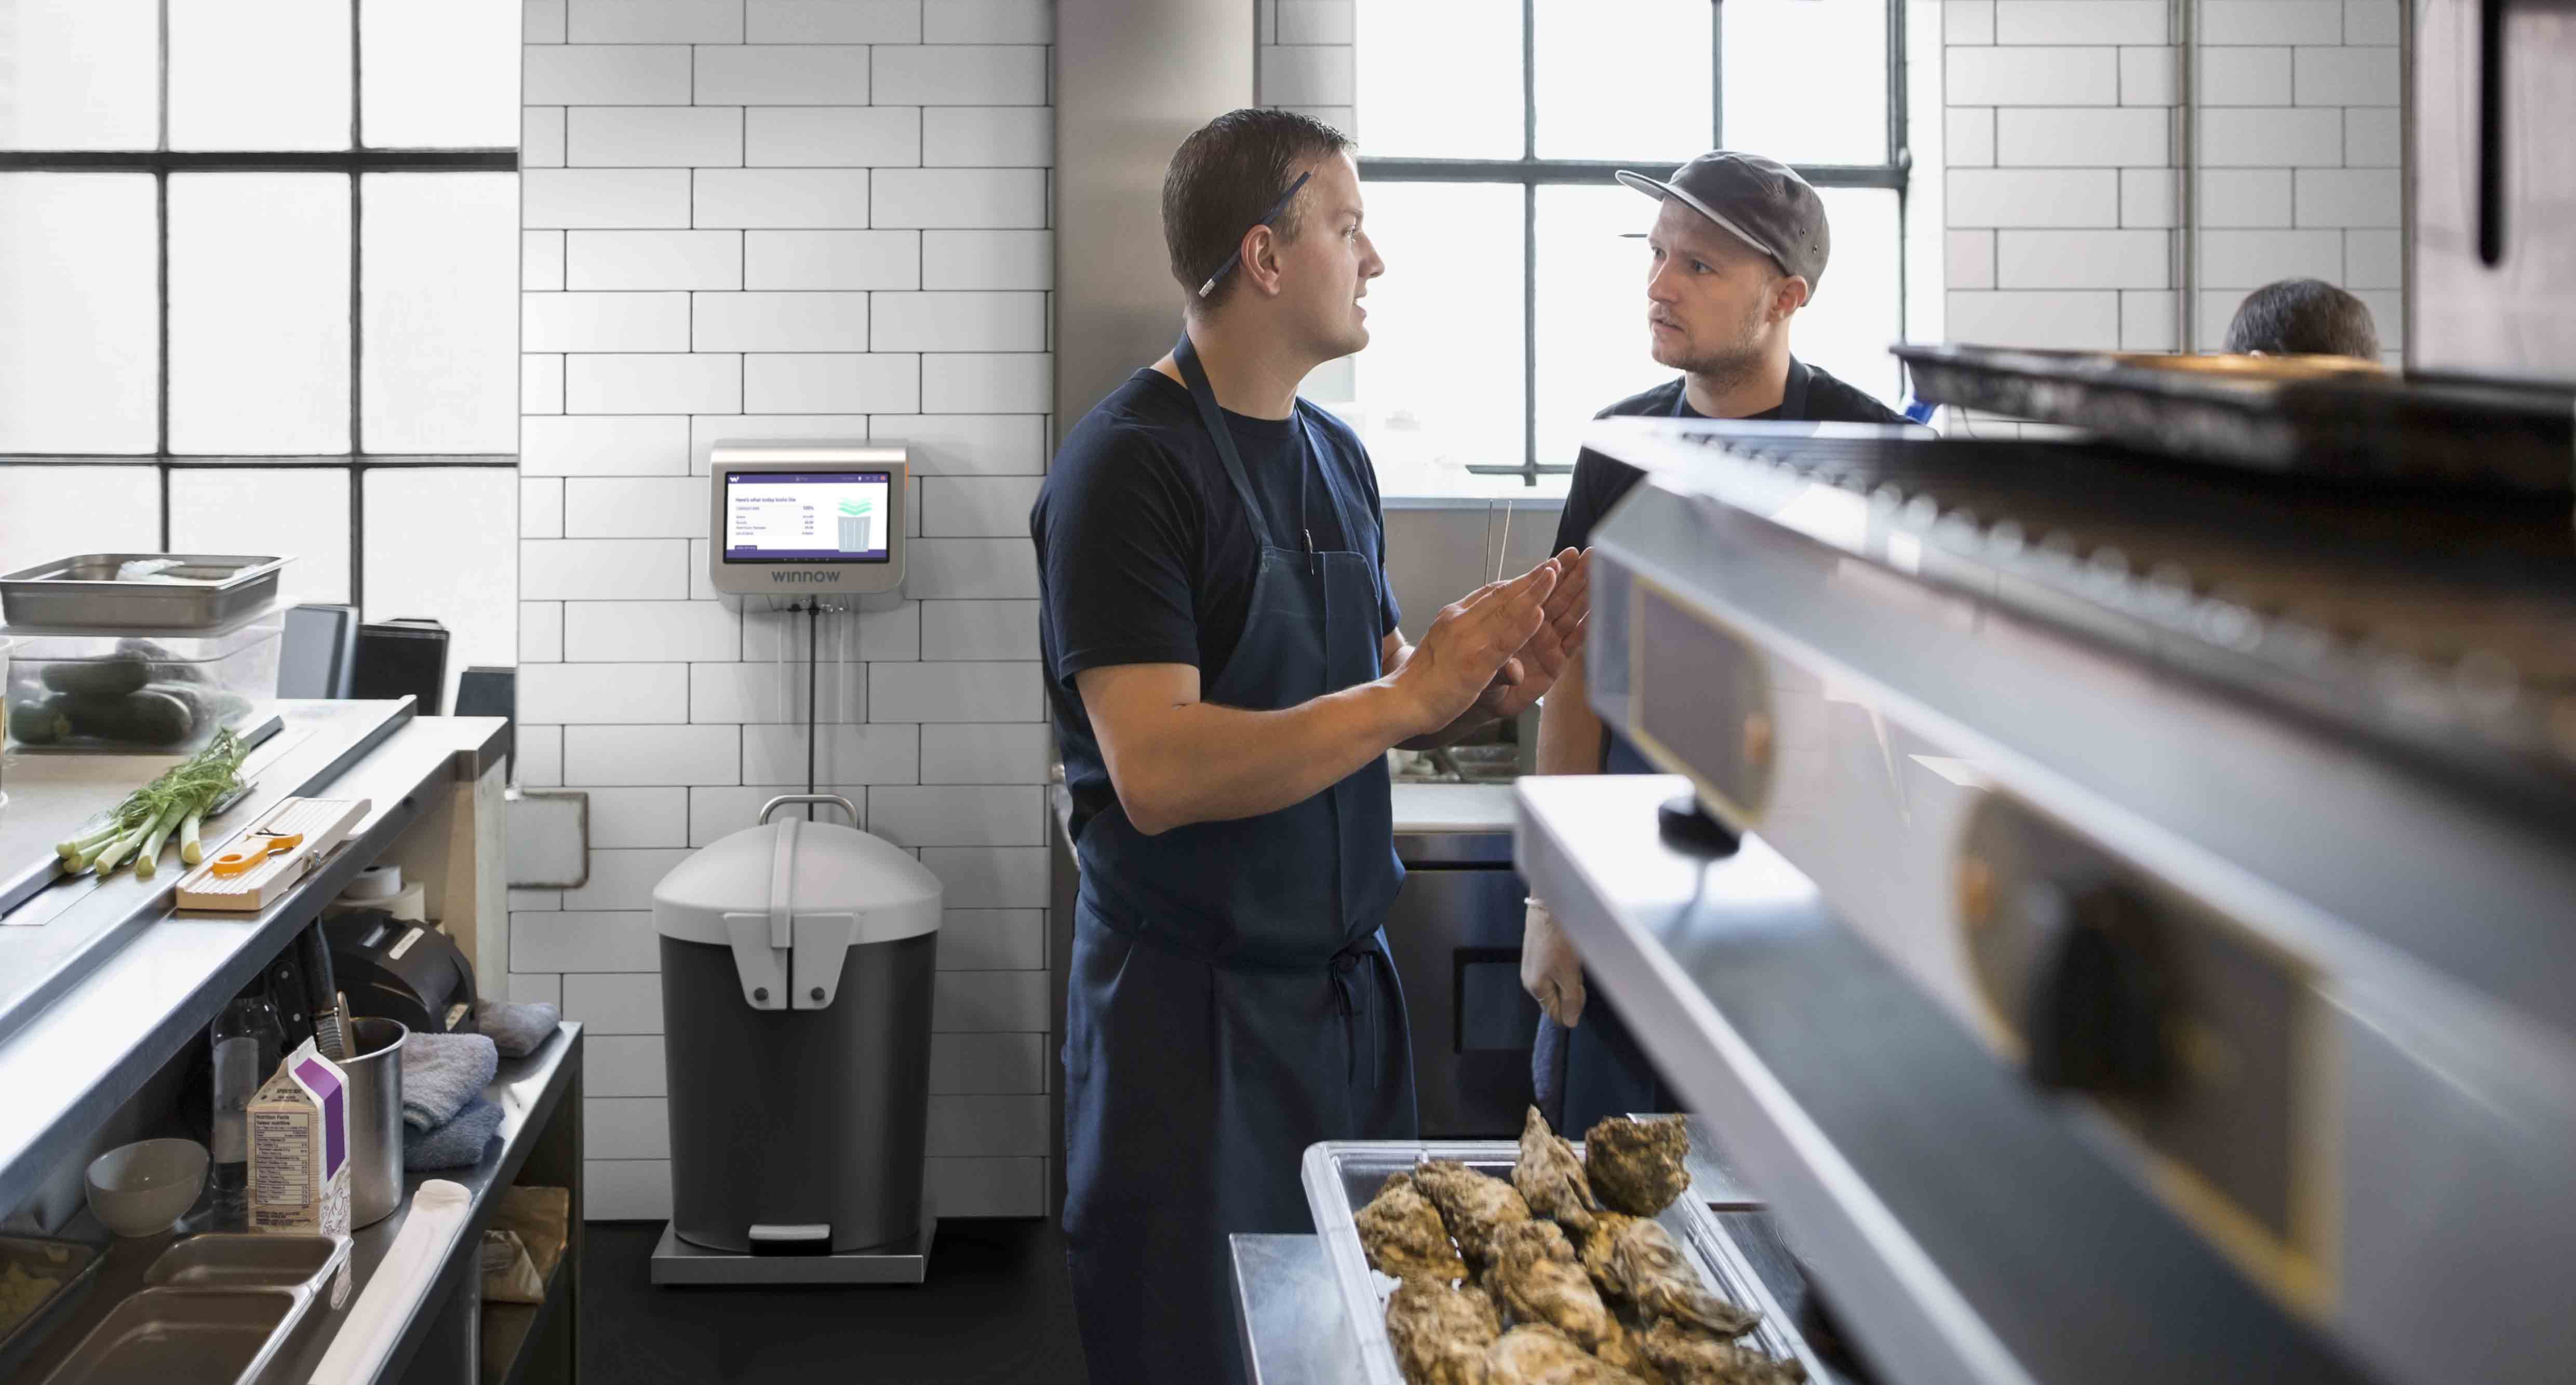 How market leaders in hospitality are using AI to drive commercial advantage